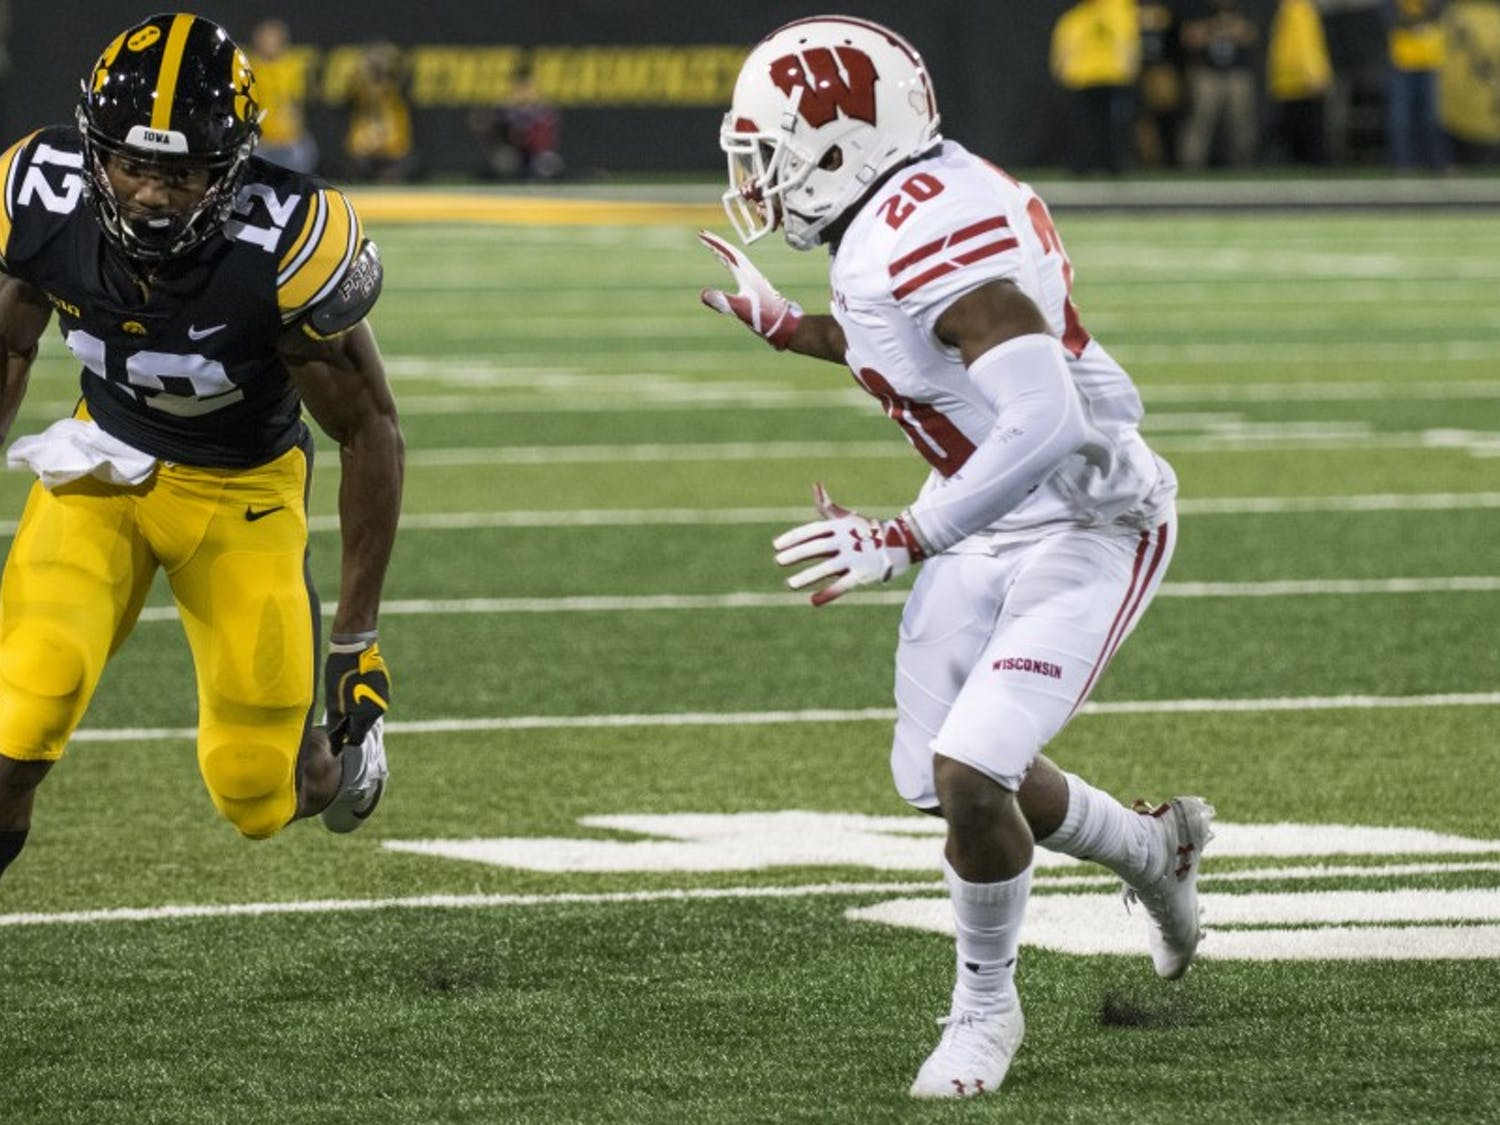 Freshman corner Faion Hicks is expected to play Saturday, making him one of the few members of Wisconsin's secondary without injury questions entering the key matchup.